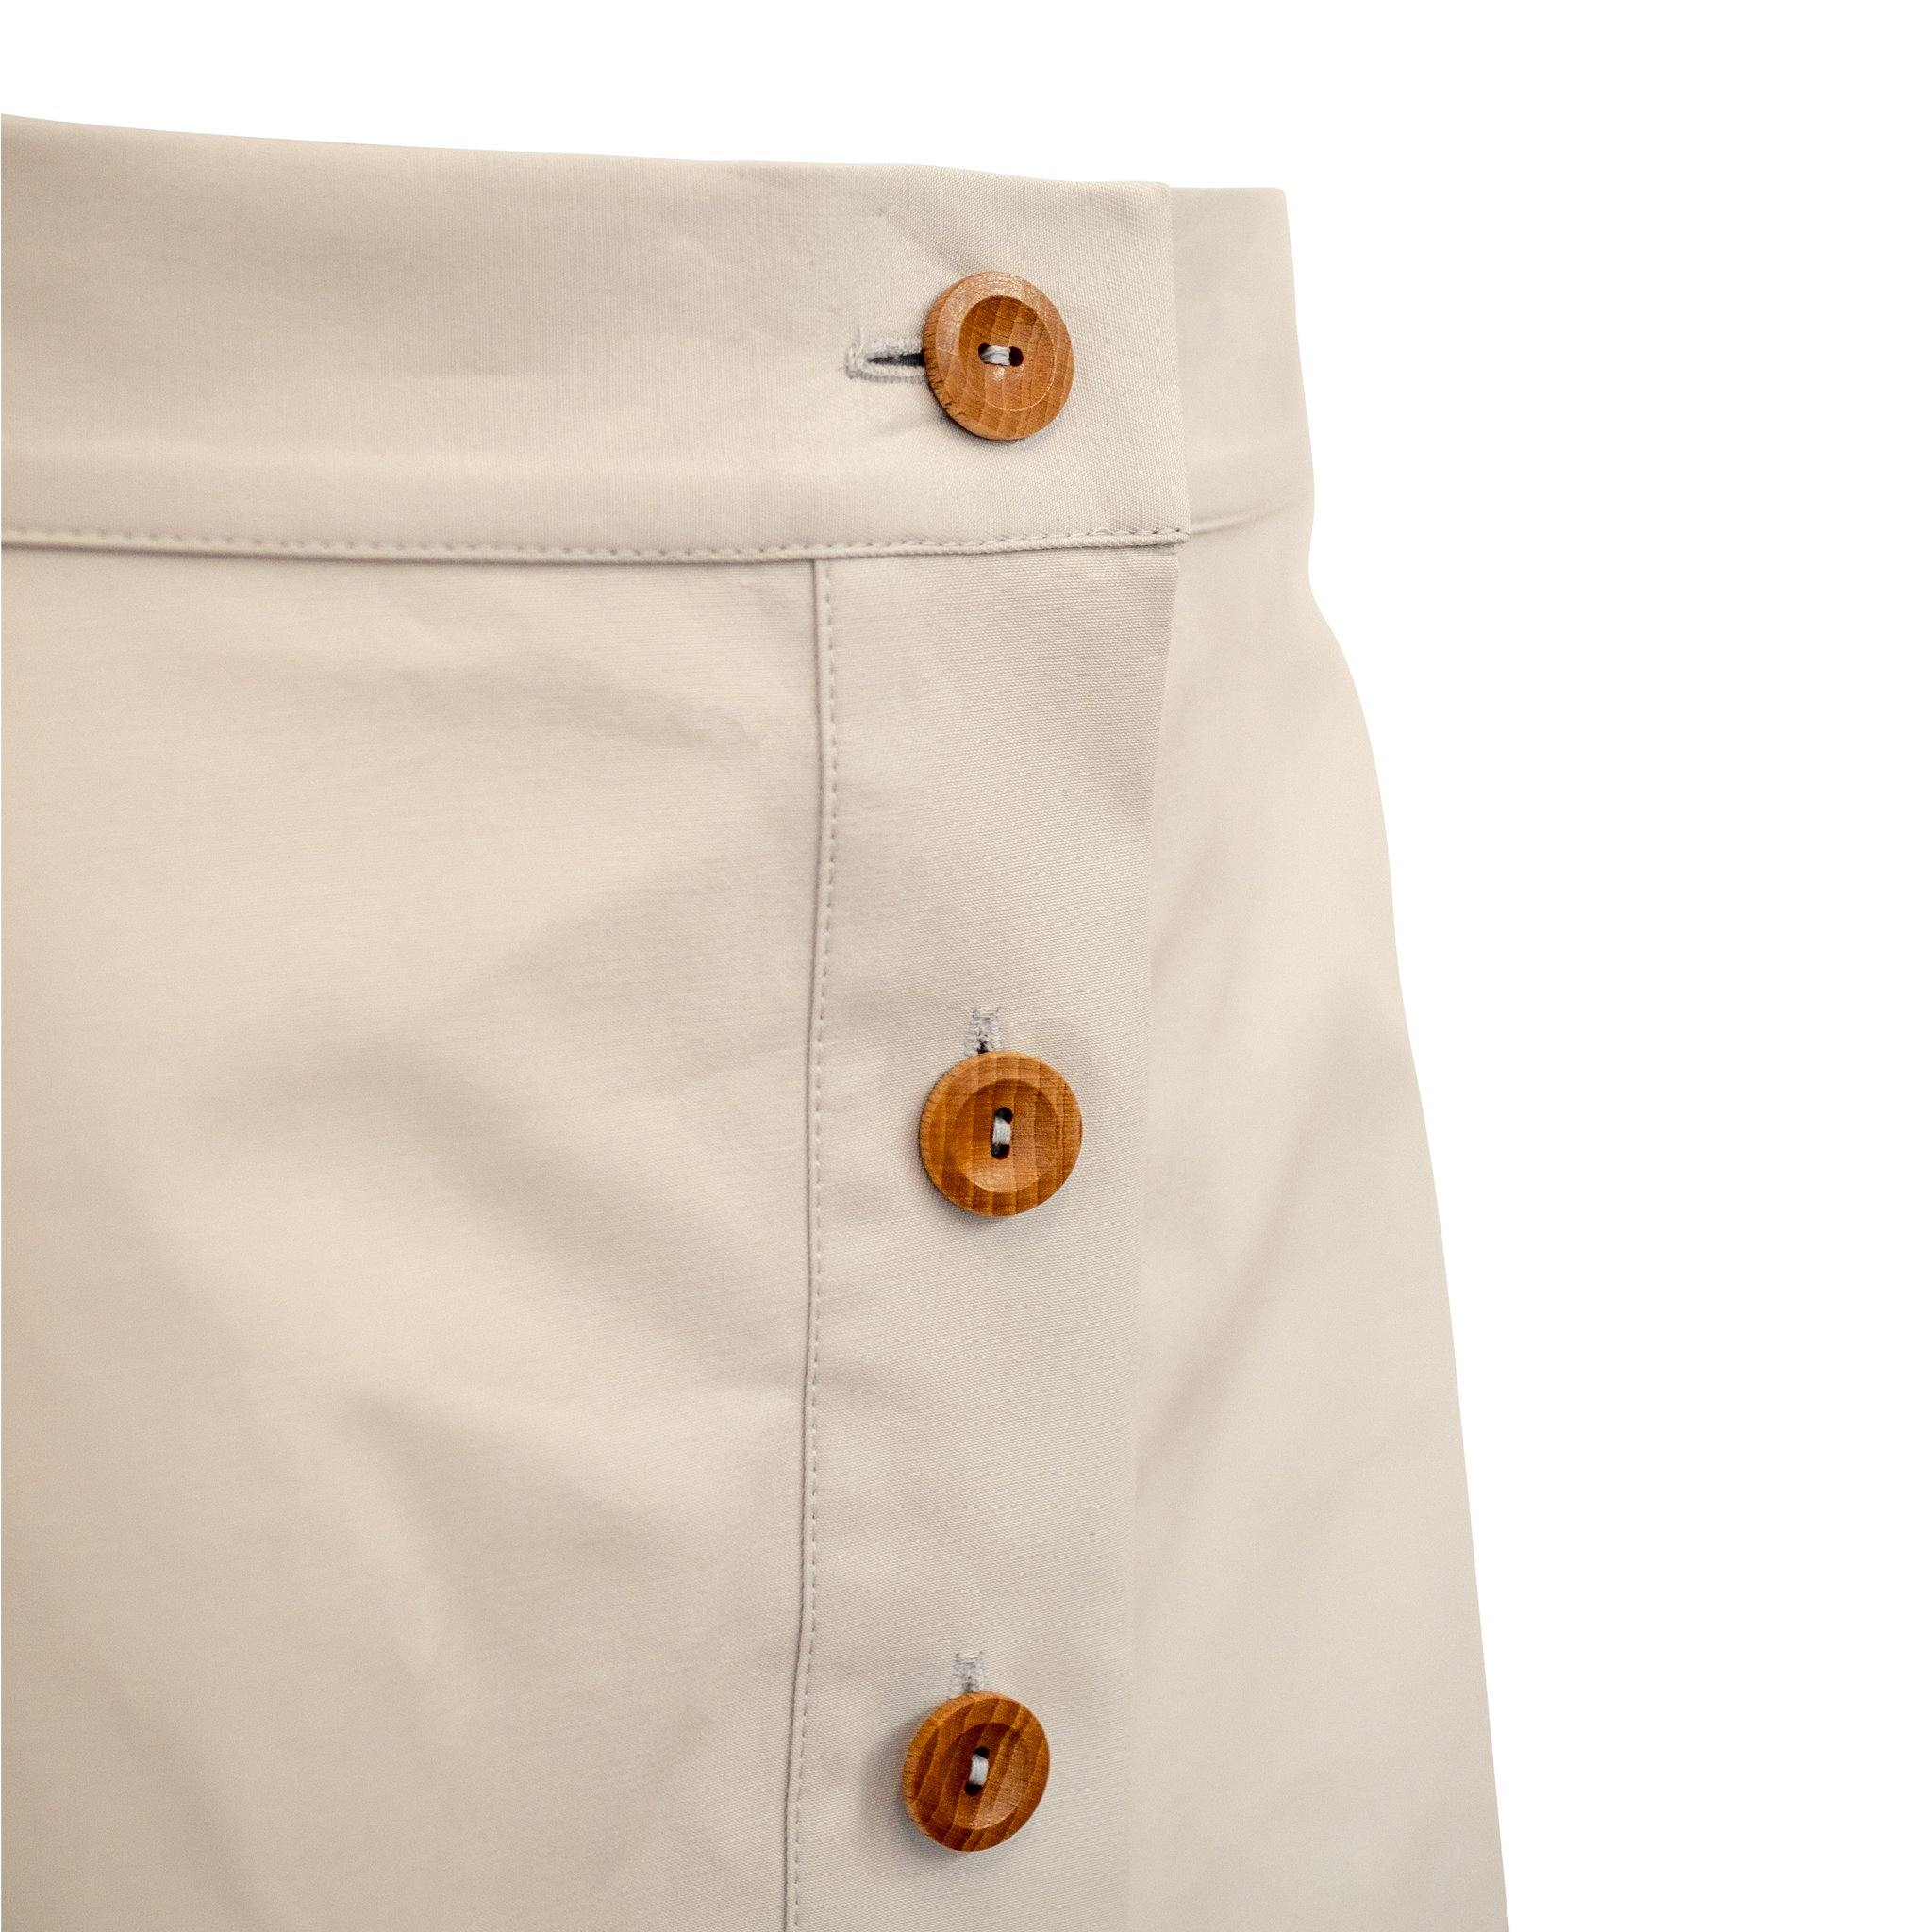 Button Skirt Cream with Wooden Buttons